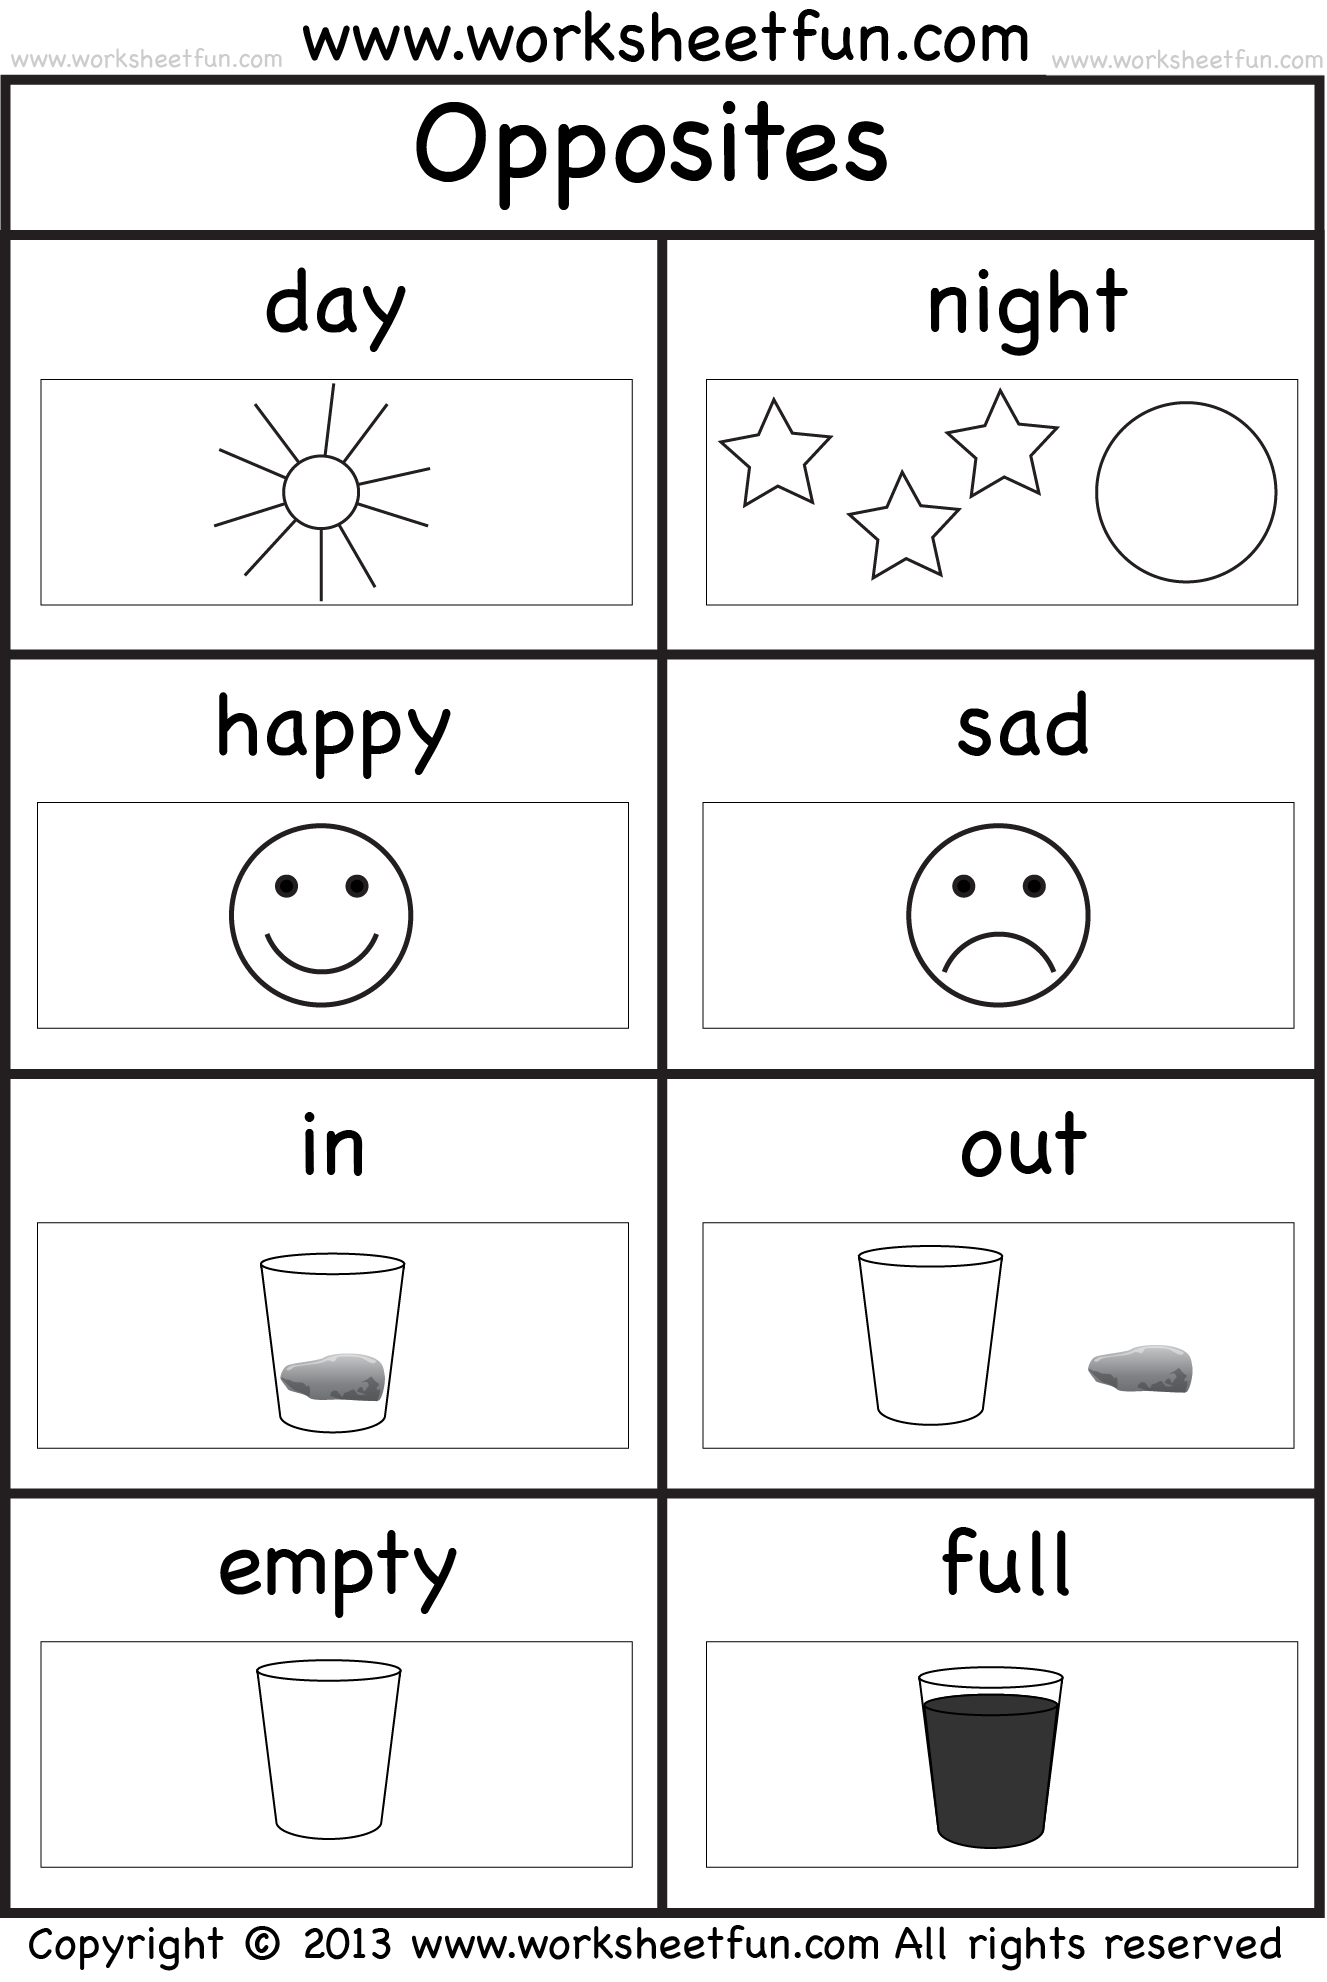 Worksheets Opposite Words For Kindergarten Students 1000 images about teaching opposites on pinterest opposite words list of and kindergarten worksheets